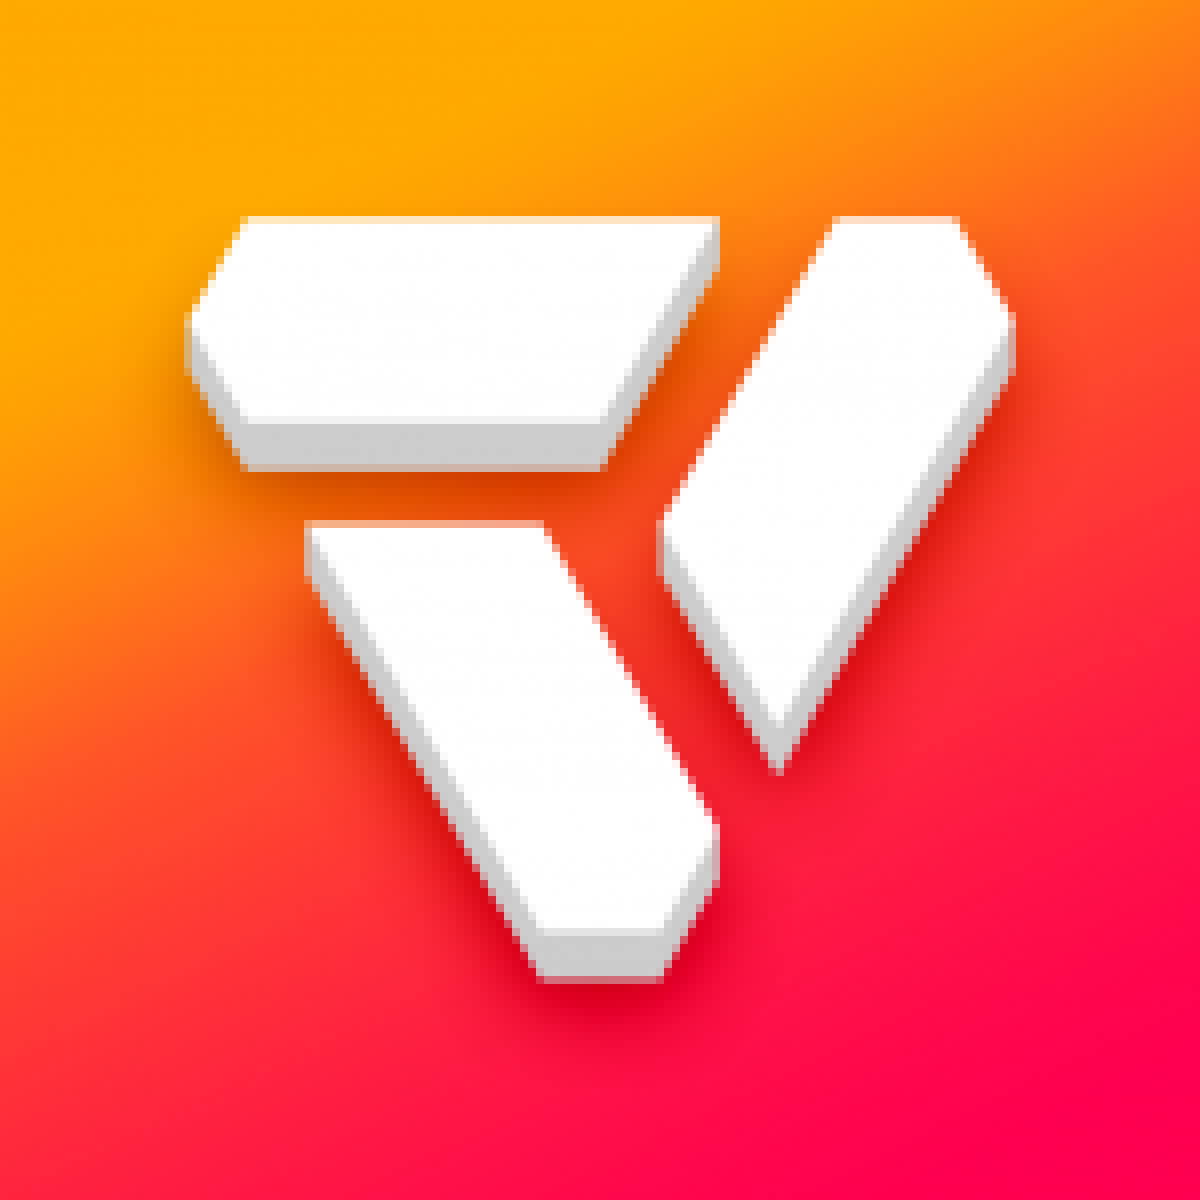 Vortex Cloud Gaming MOD APK 1.5.0 Download (Unlocked) for Android